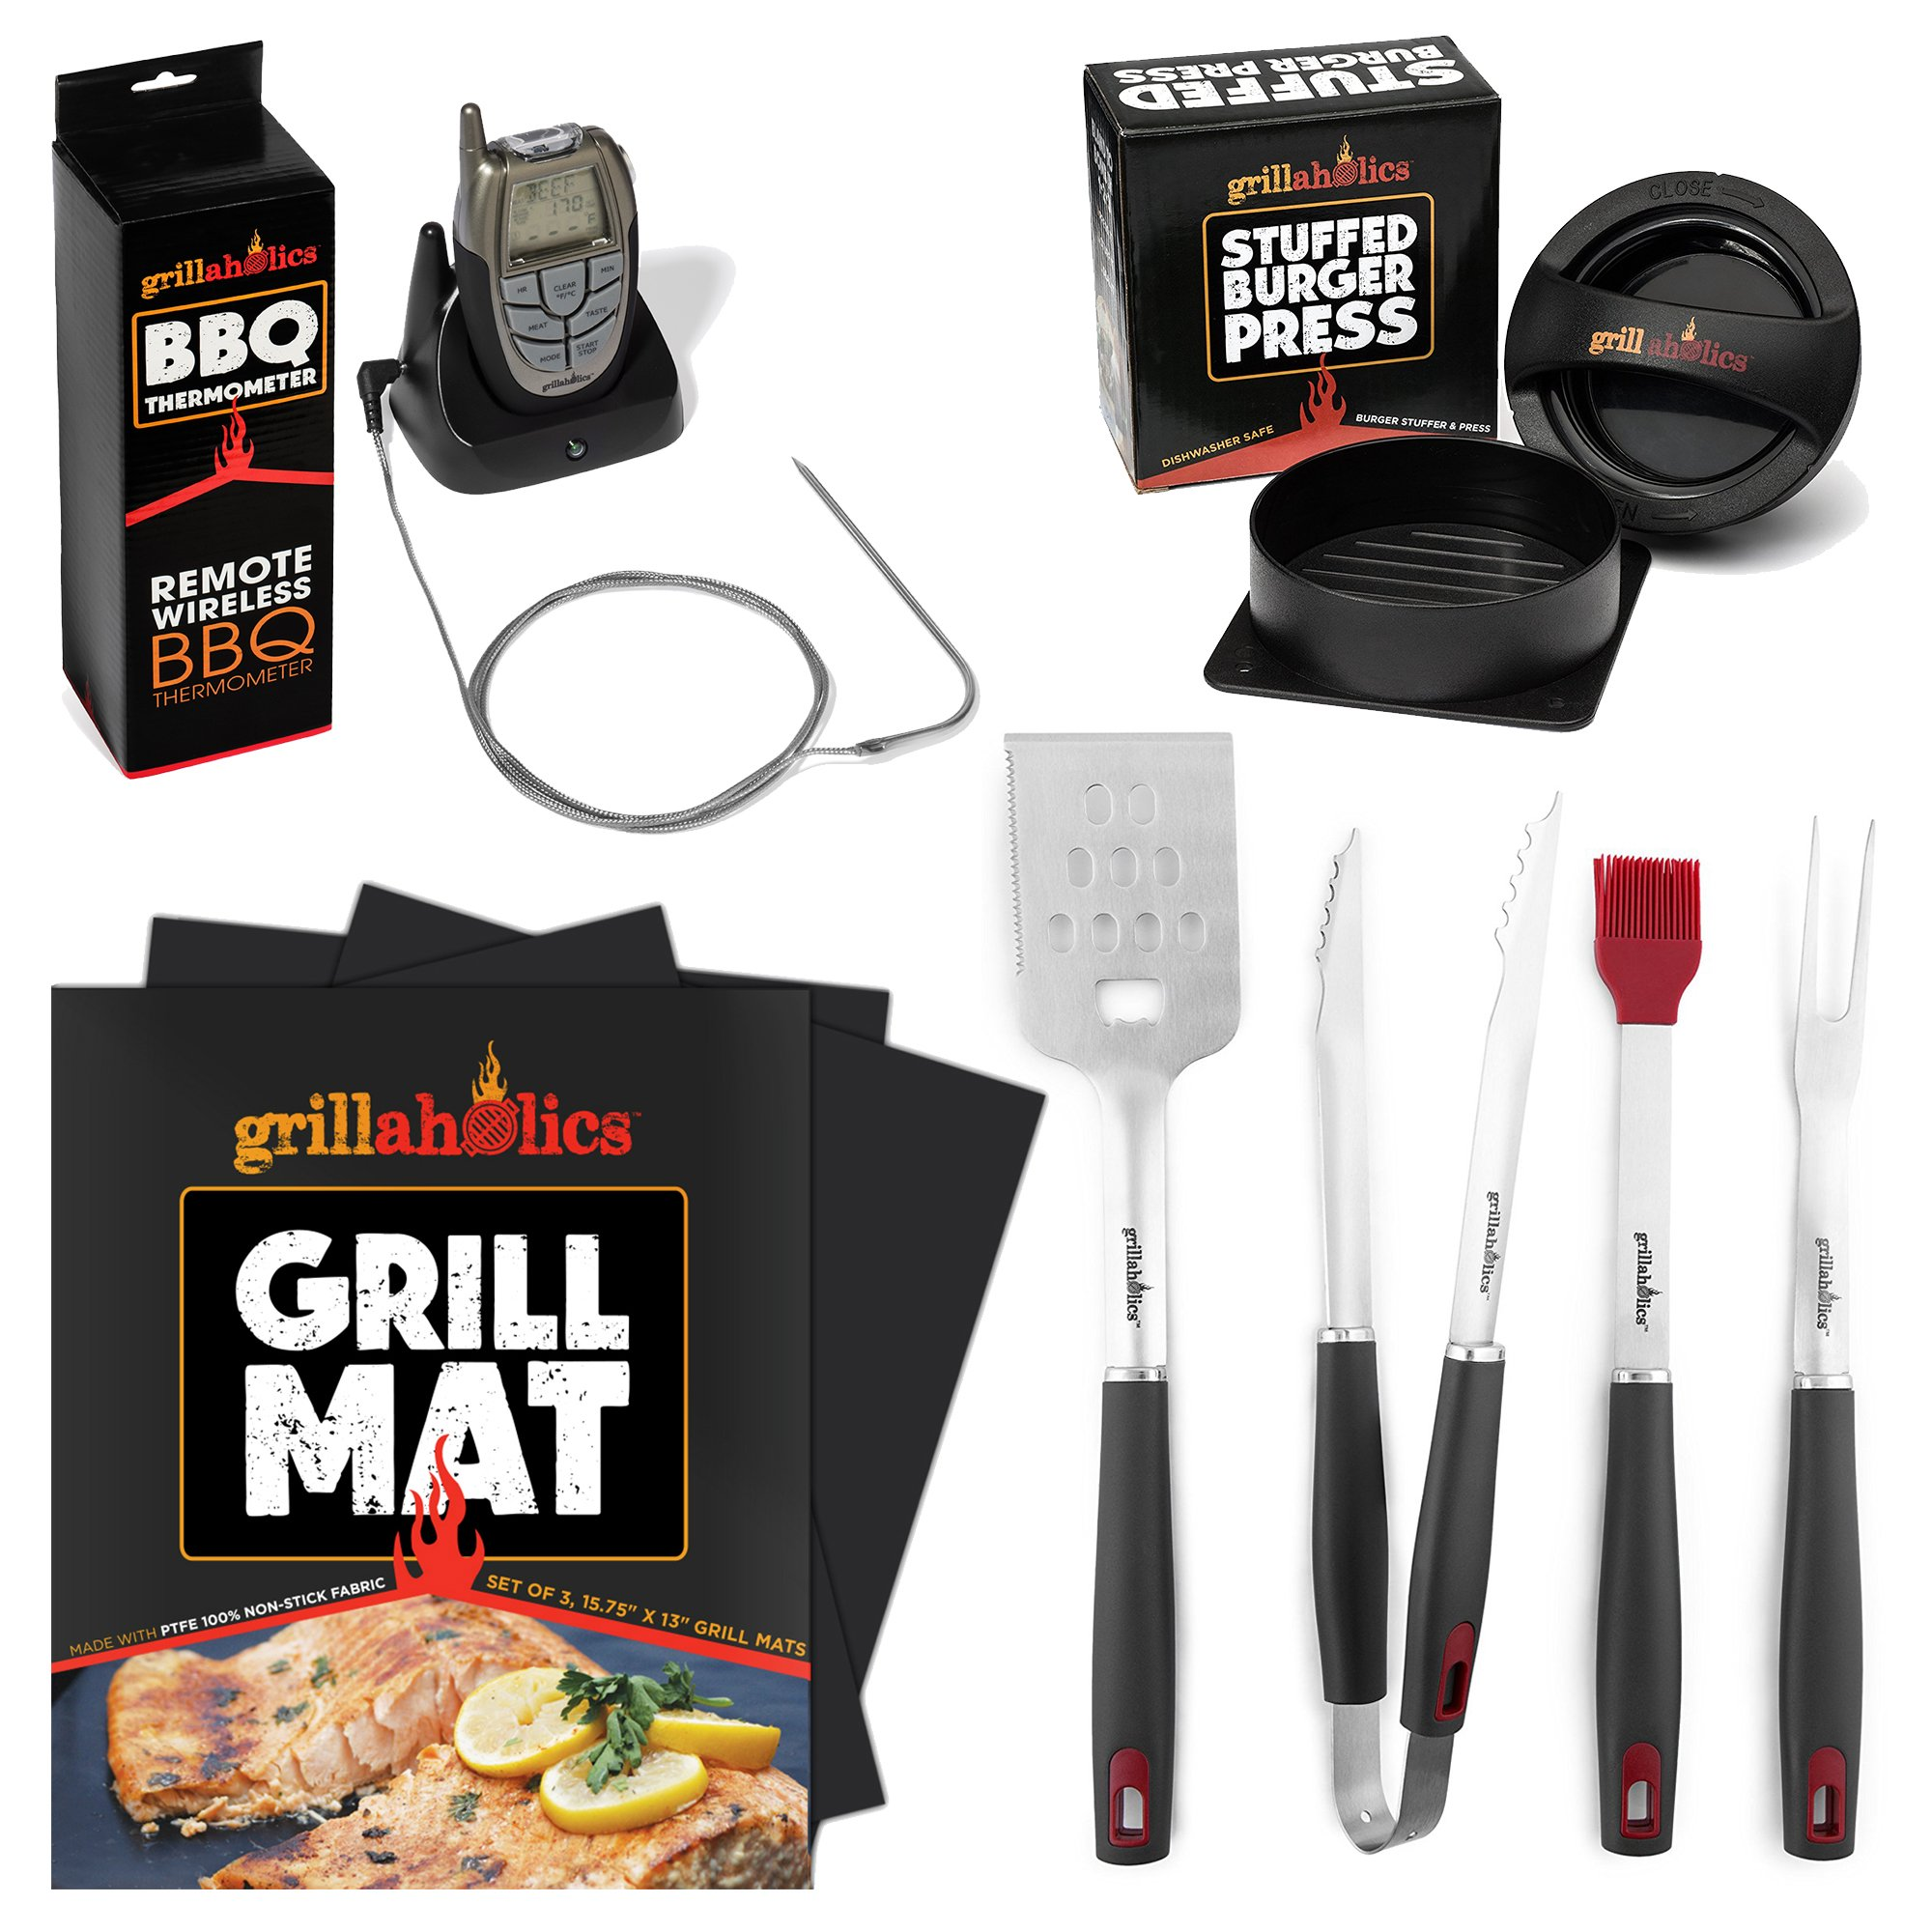 Grillaholics Gift For Dad Grilling Bundle - Includes Set of 3 Non Stick Grill Mats, Stuffed Burger Press, Set of 4-Piece Grill Tool Set, Premium Meat Thermometer - Massive Gift Package for Dad